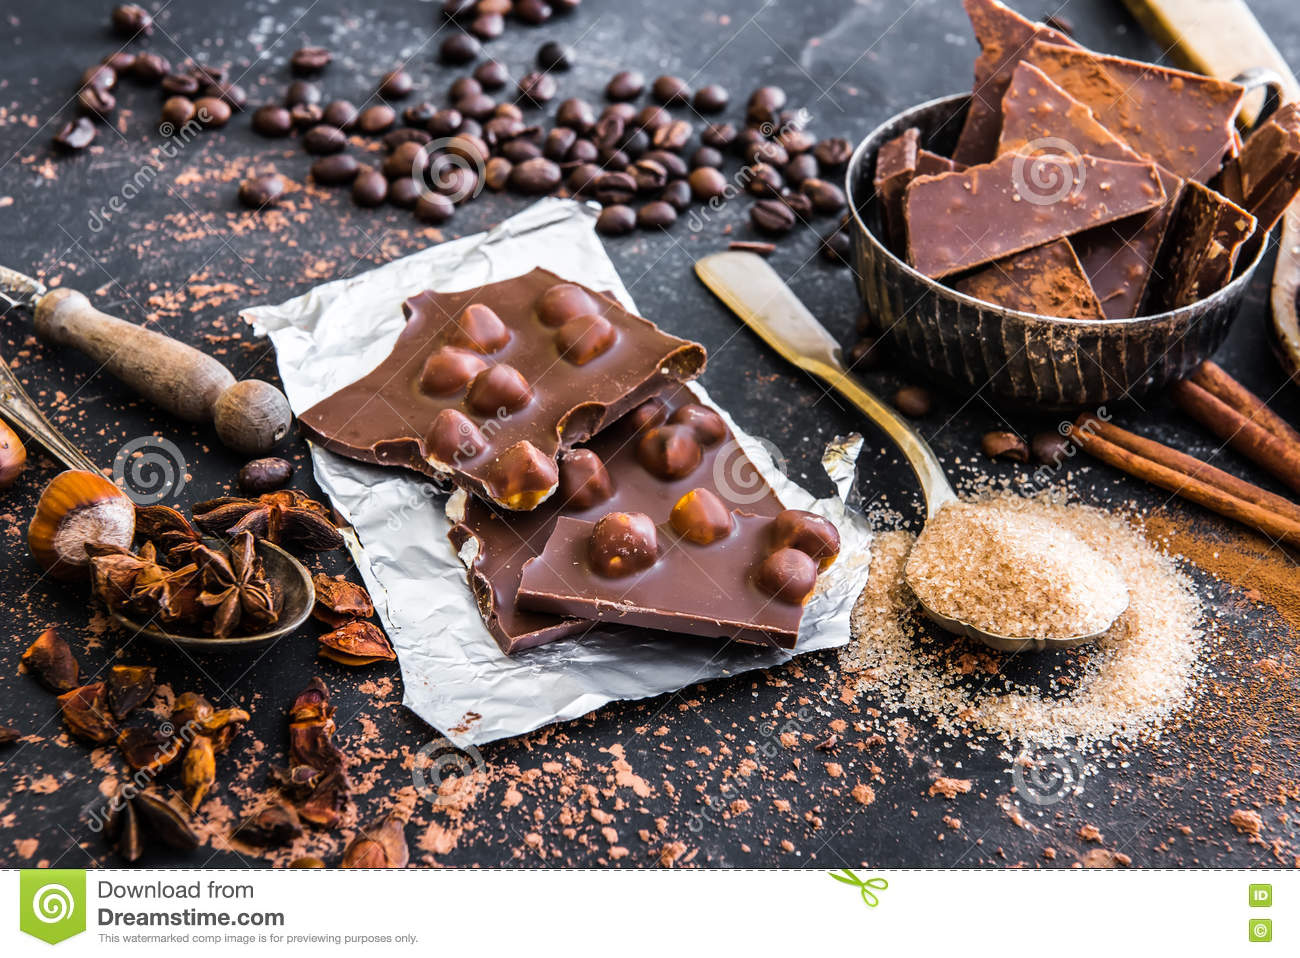 Chocolate with nuts and spices on a table